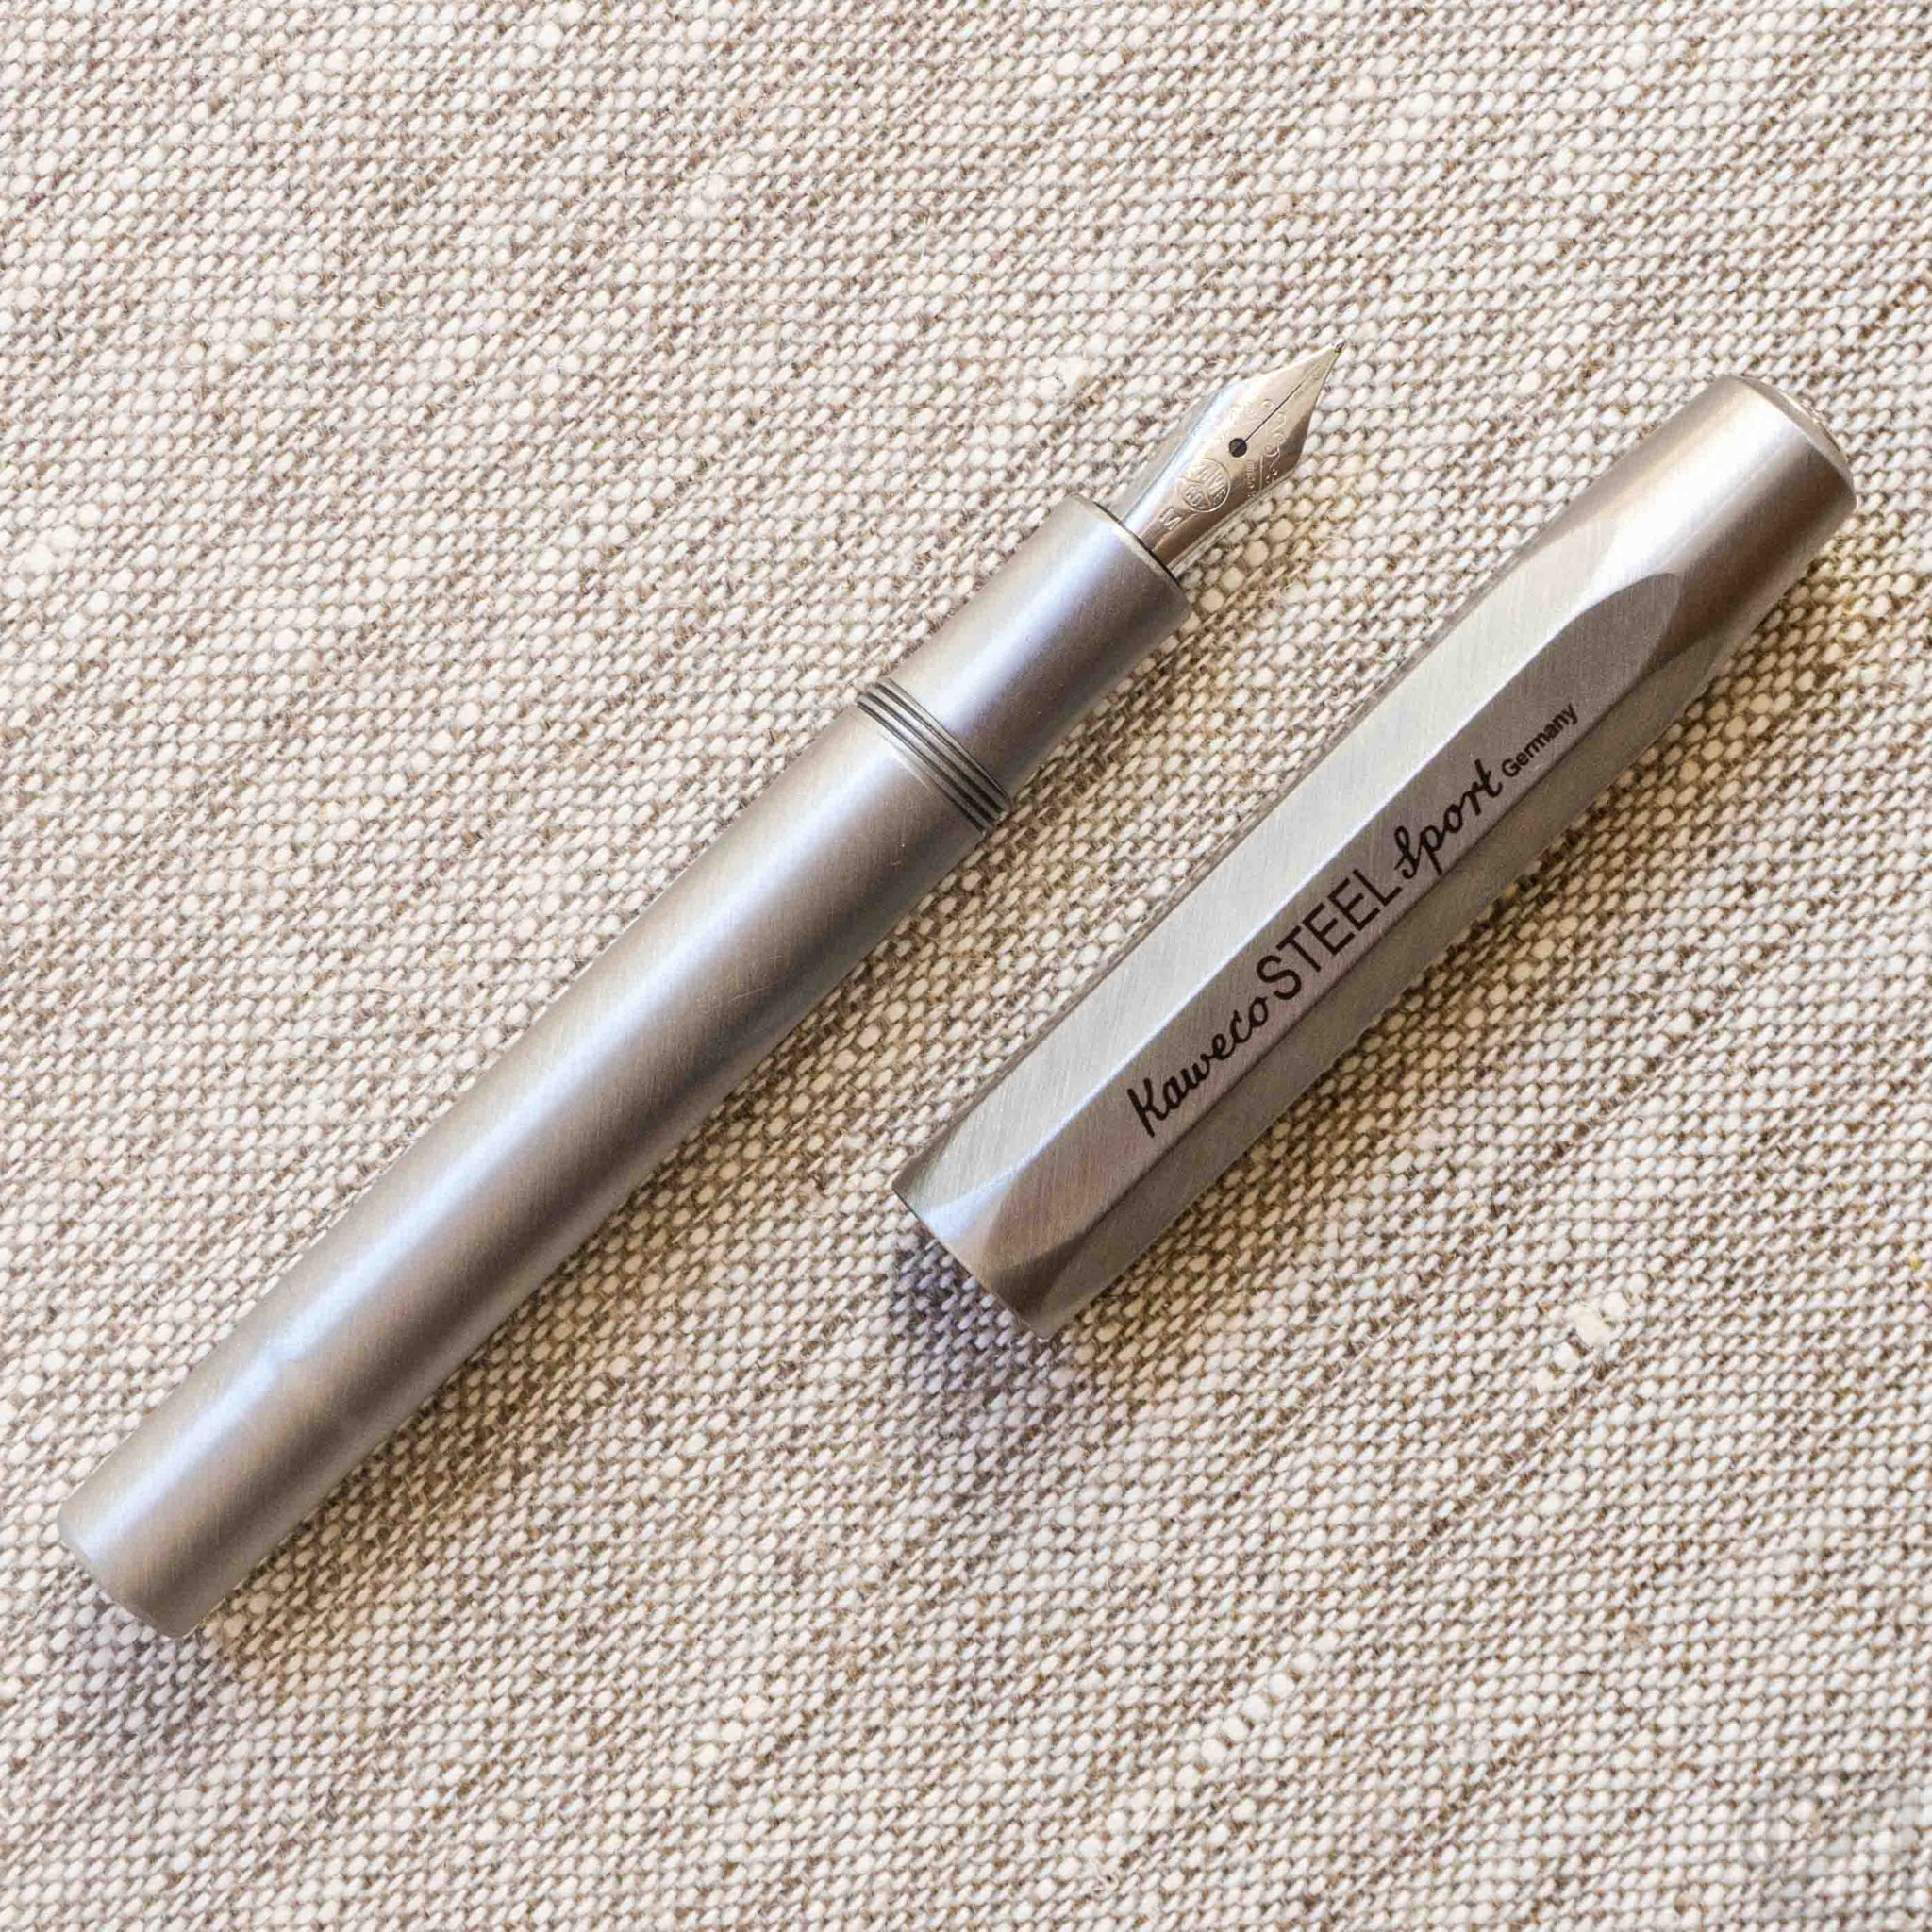 Kaweco Steel Sport Medium Nib Fountain Pen